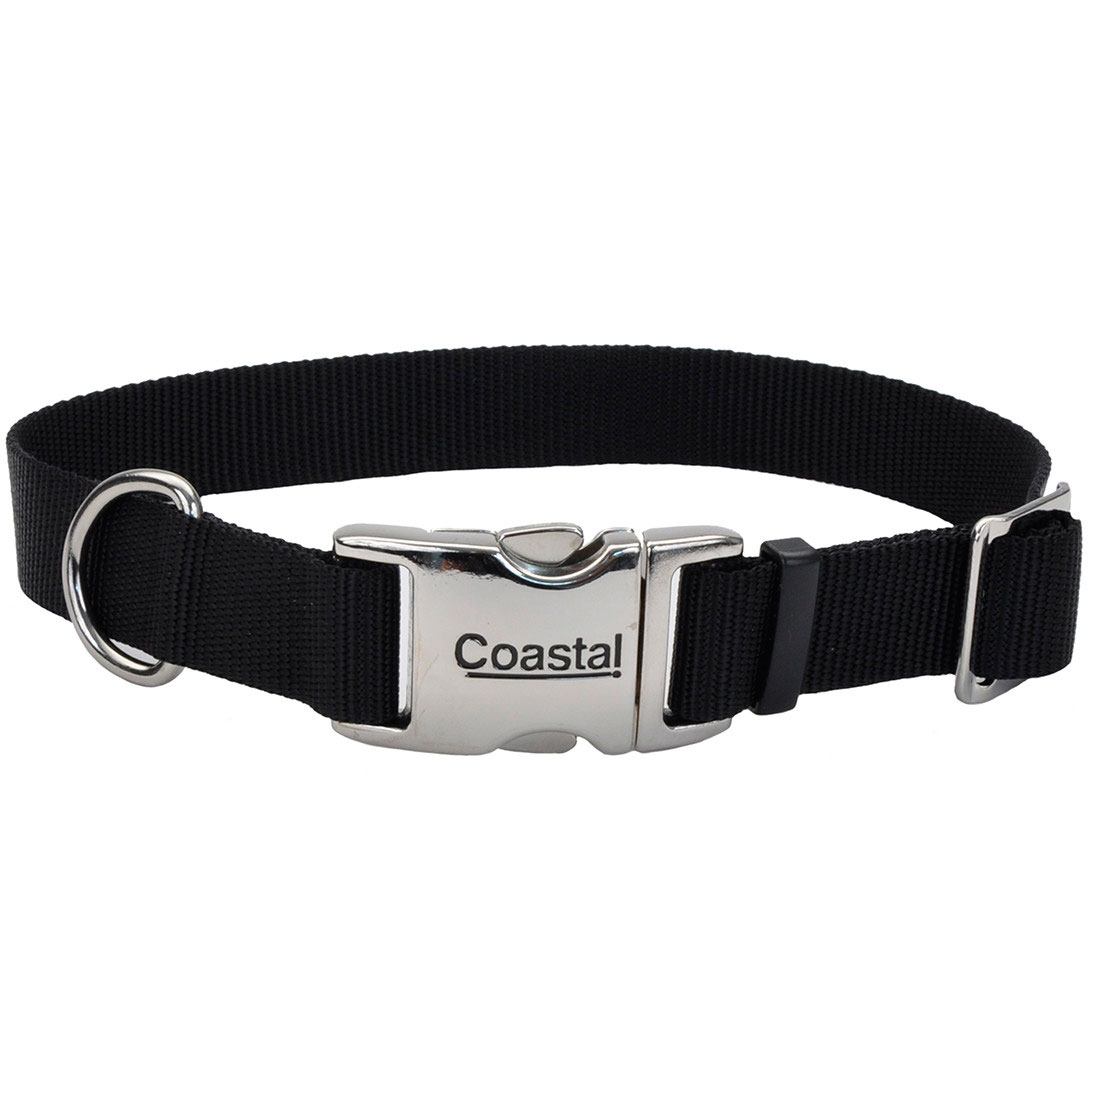 Coastal Adjustable Collar with Metal Buckle for Dogs, Black Image